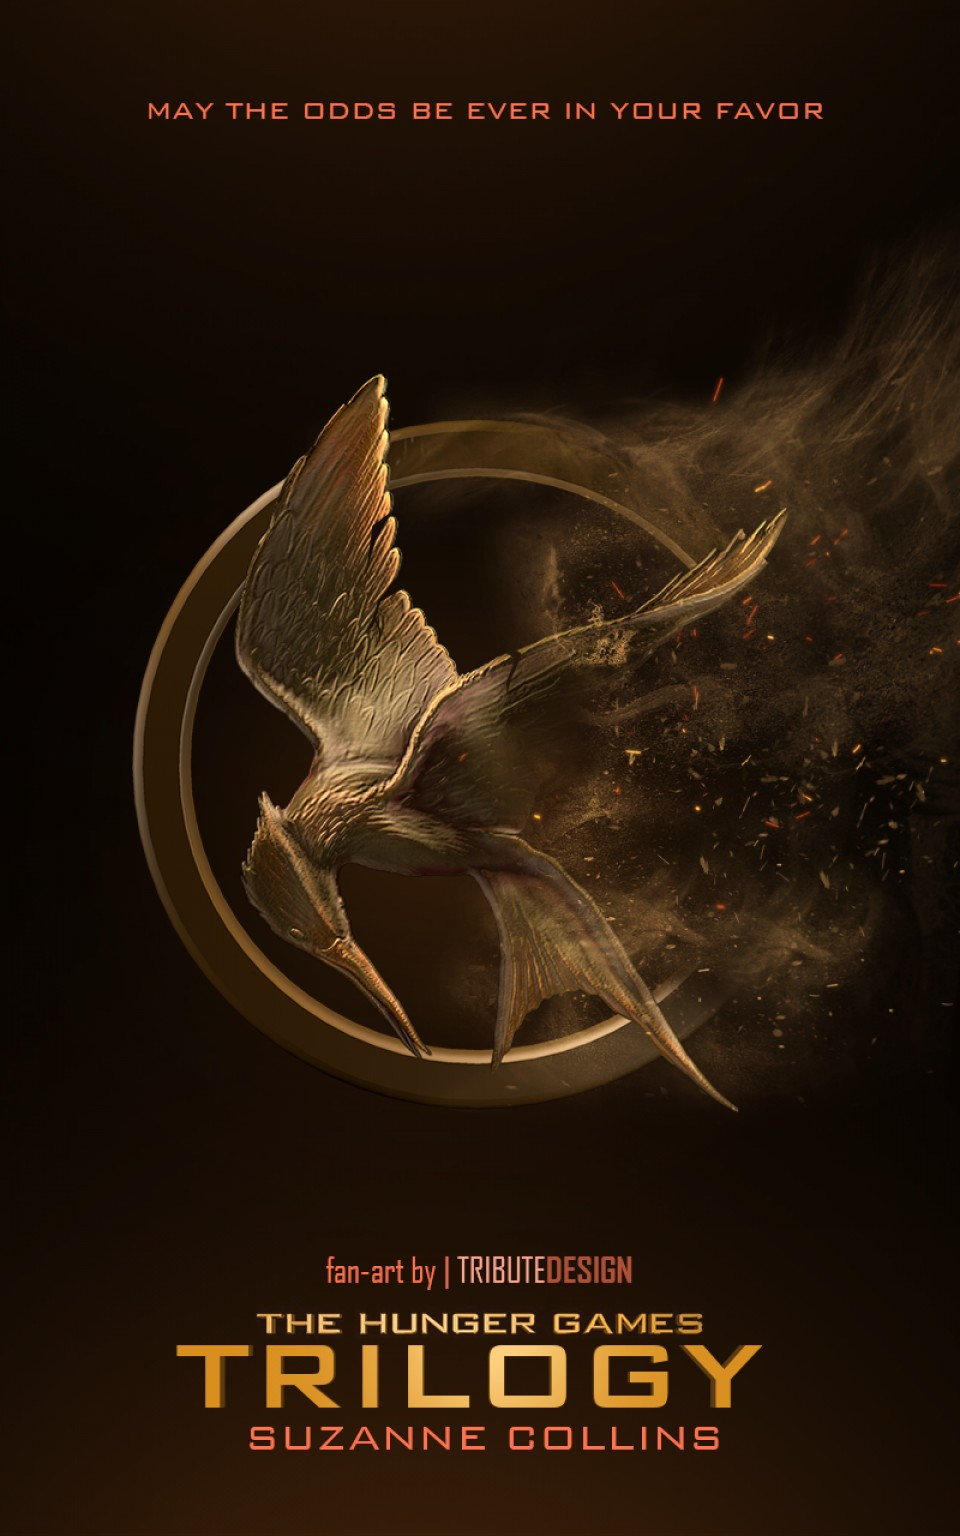 014 The Hunger Games Book Review Essay Example Trilogy Cover By Tributedesign Imposing 960